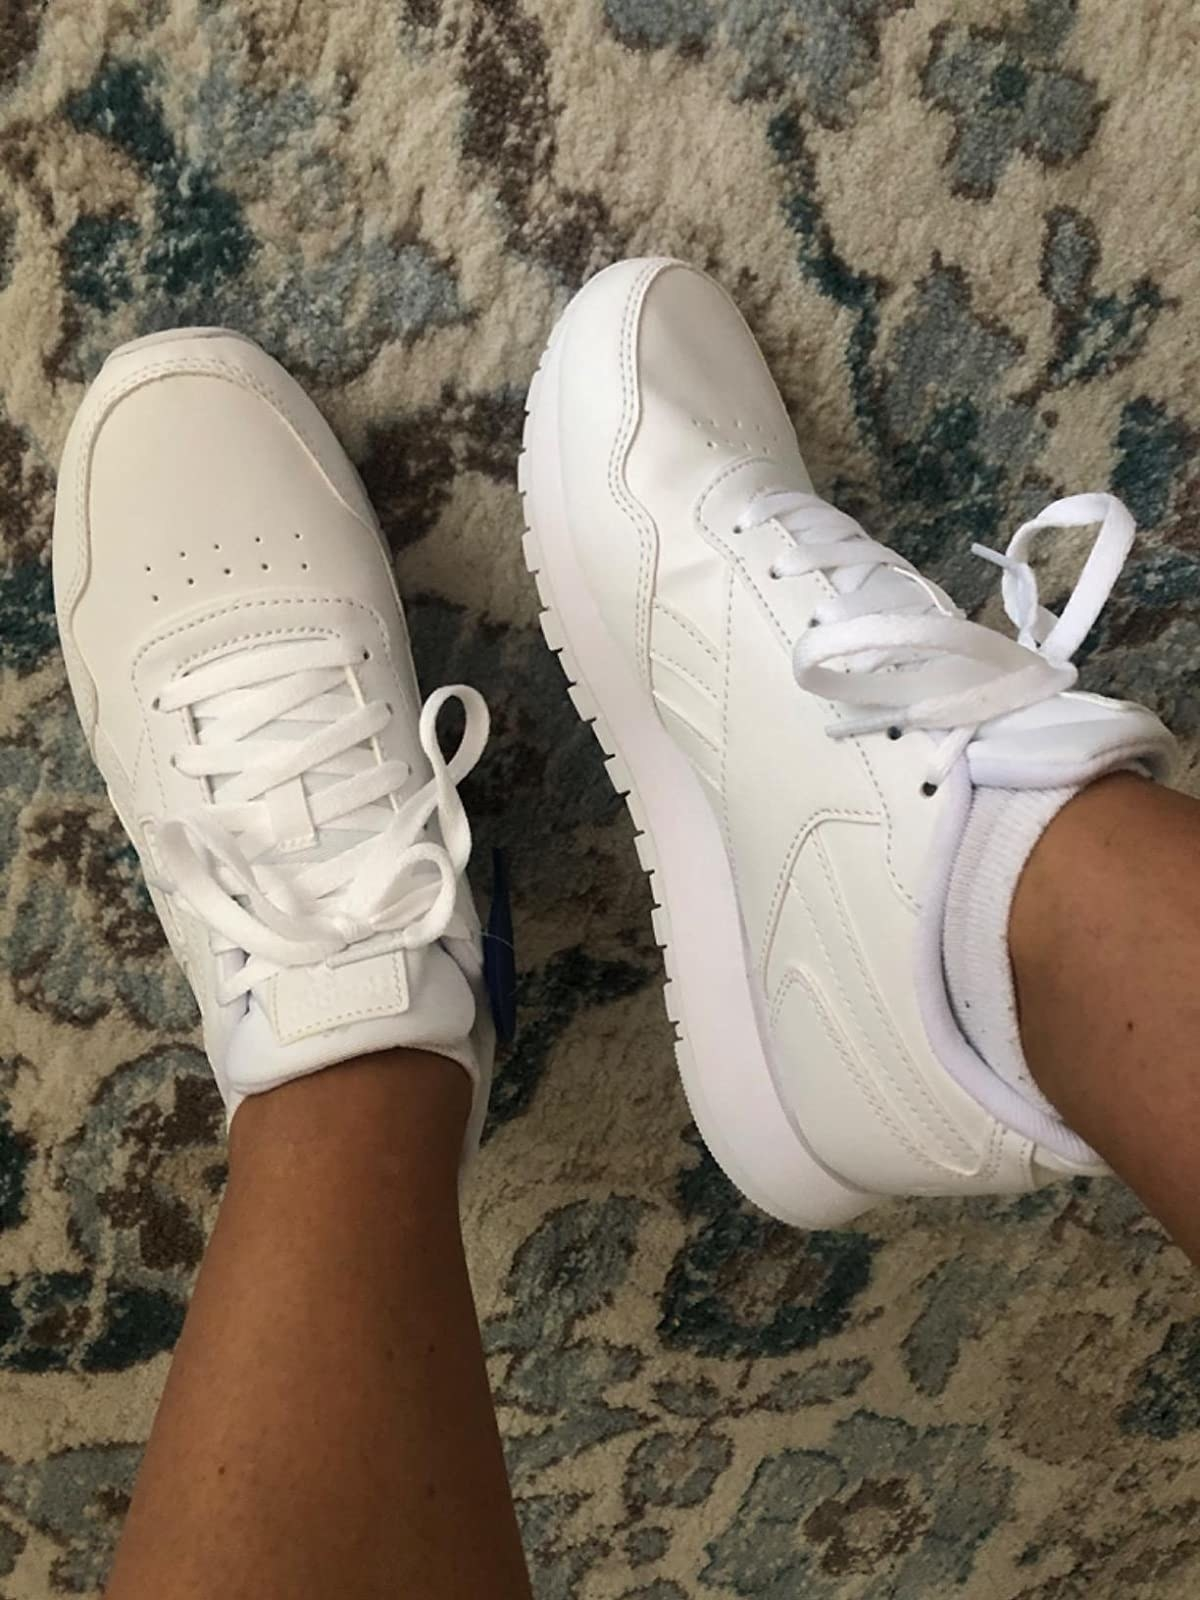 A reviewer wearing the white sneakers with matching laces and a thick bottom